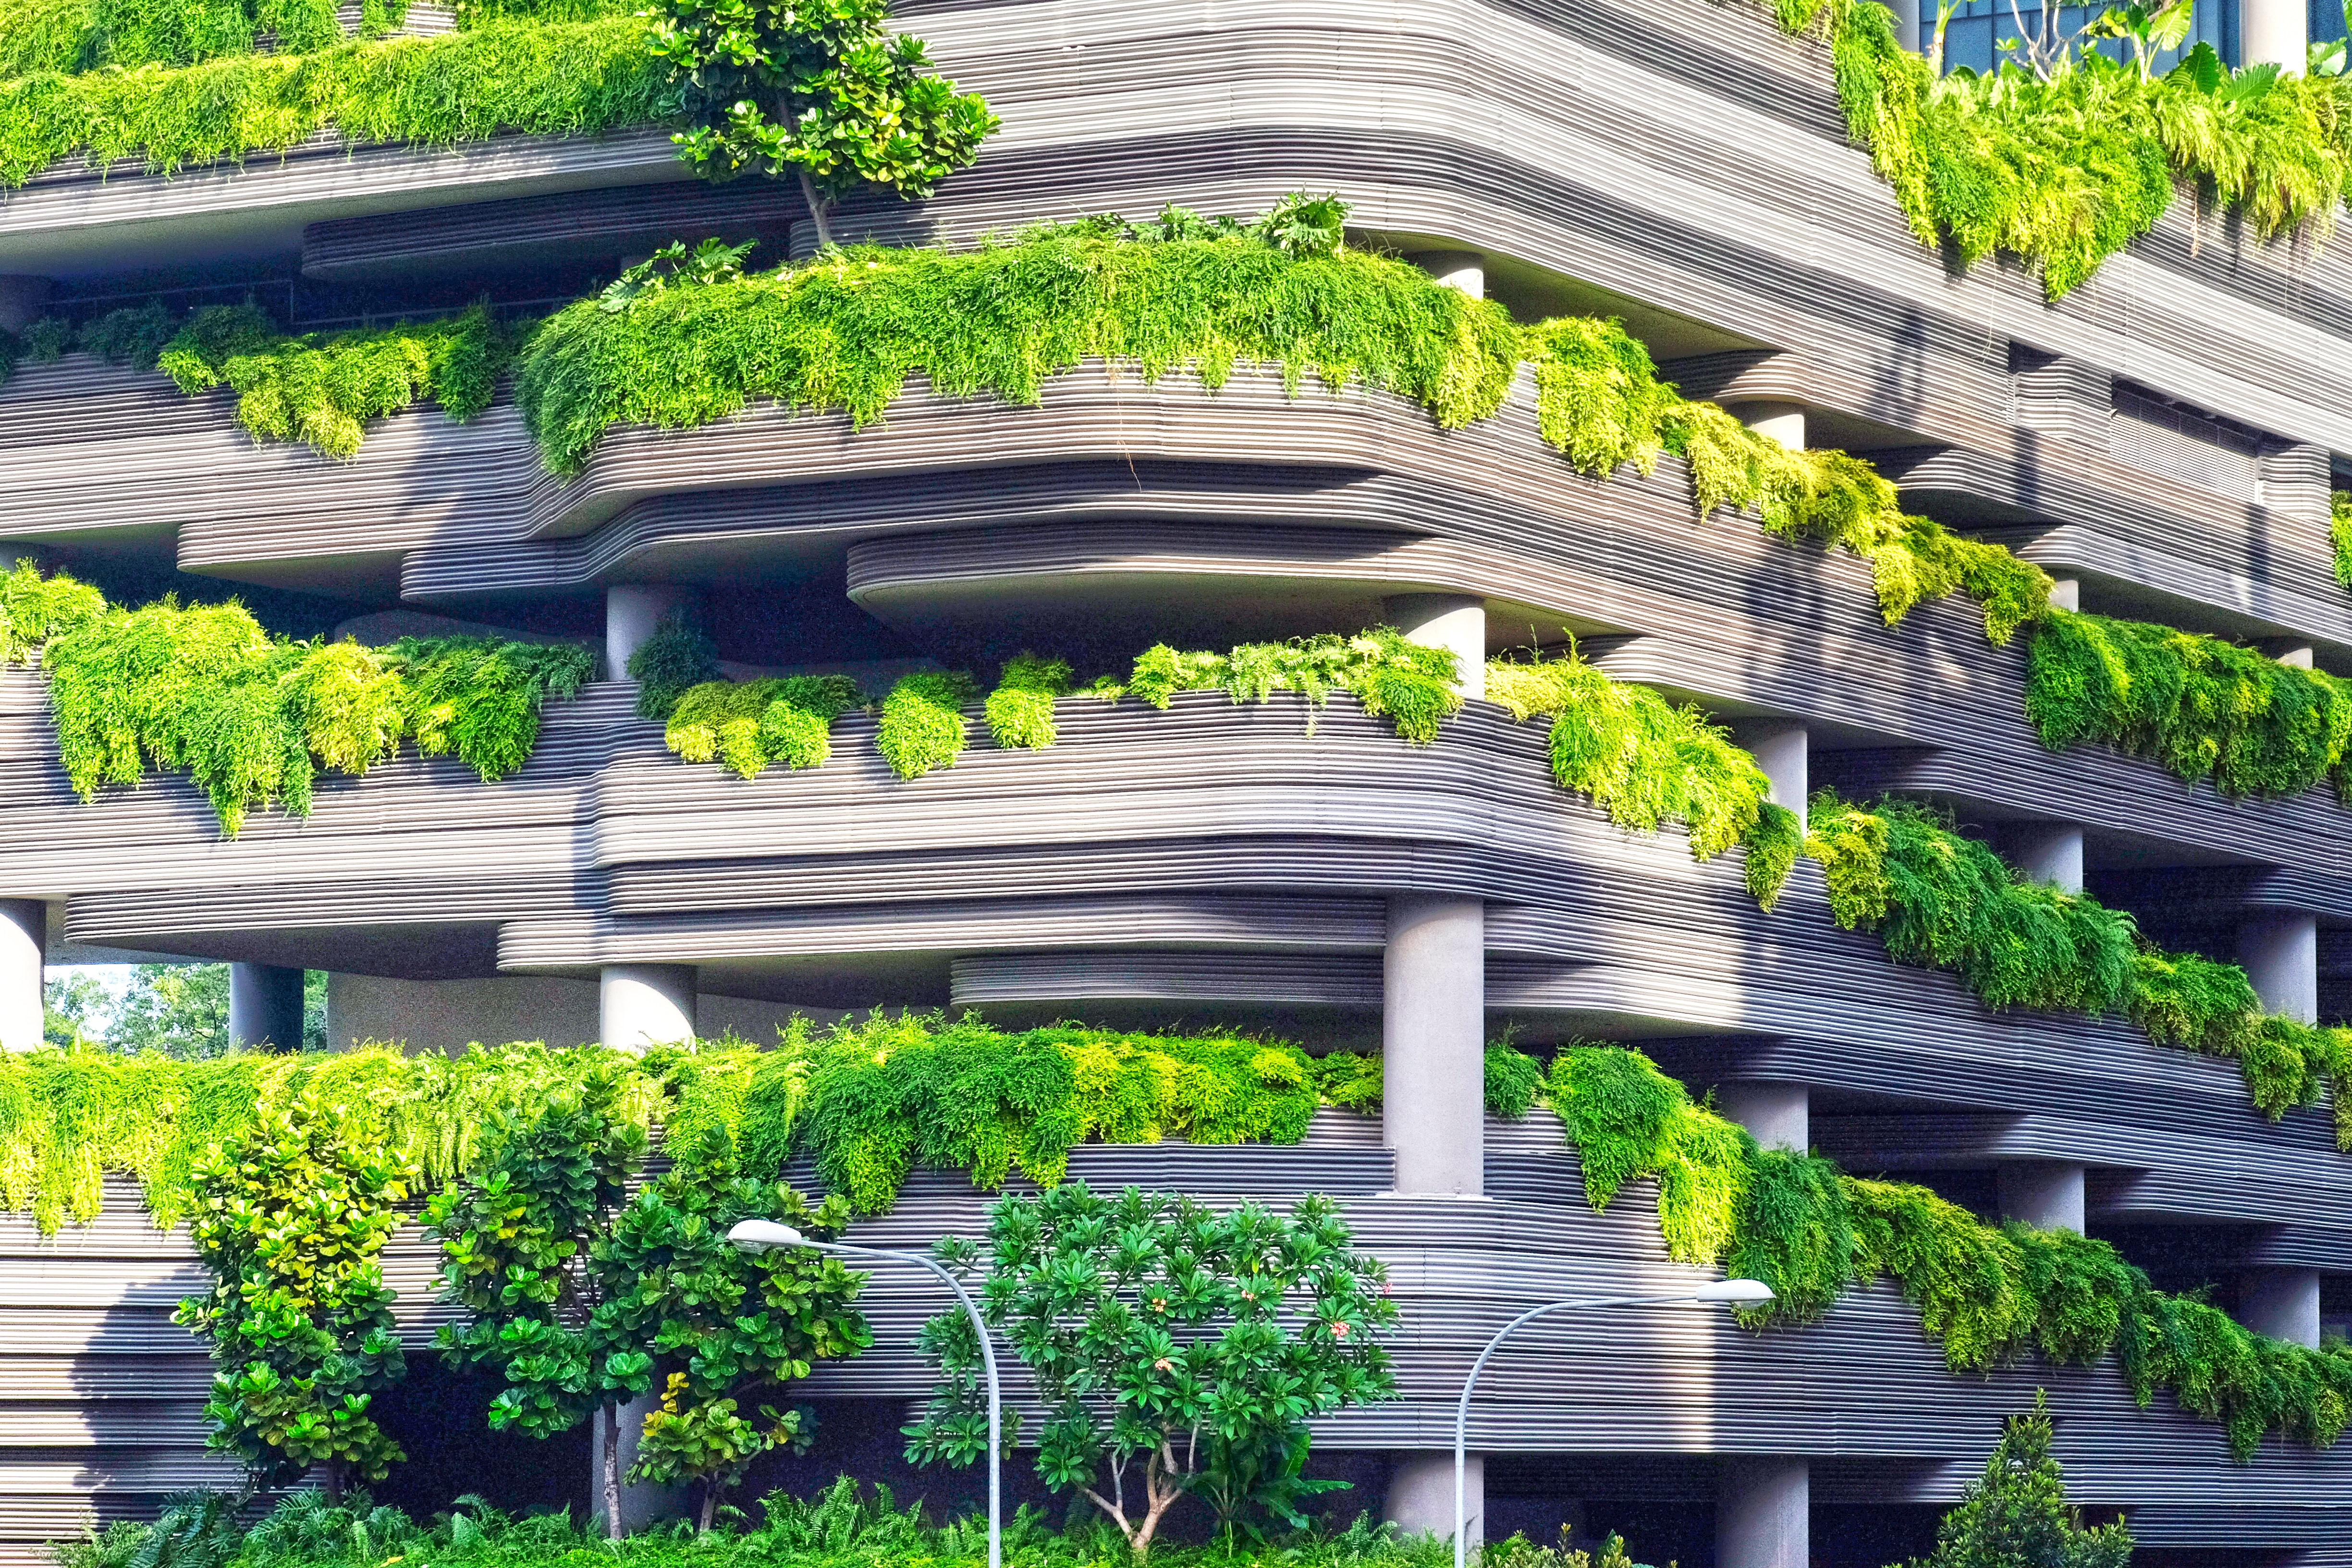 Green plants covering the walls of a multi-story building